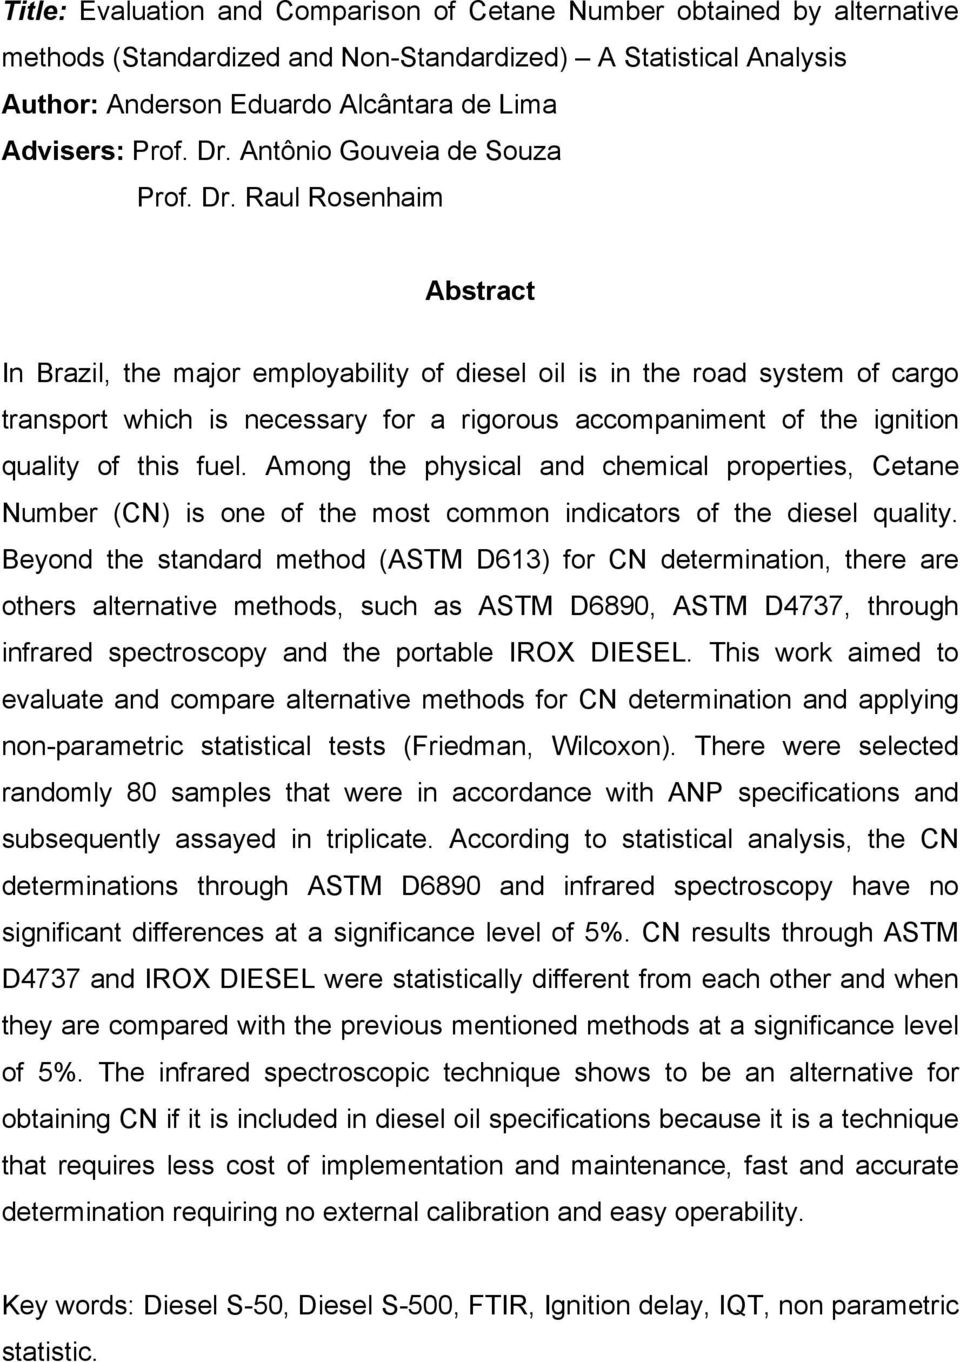 Raul Rosenhaim Abstract In Brazil, the major employability of diesel oil is in the road system of cargo transport which is necessary for a rigorous accompaniment of the ignition quality of this fuel.